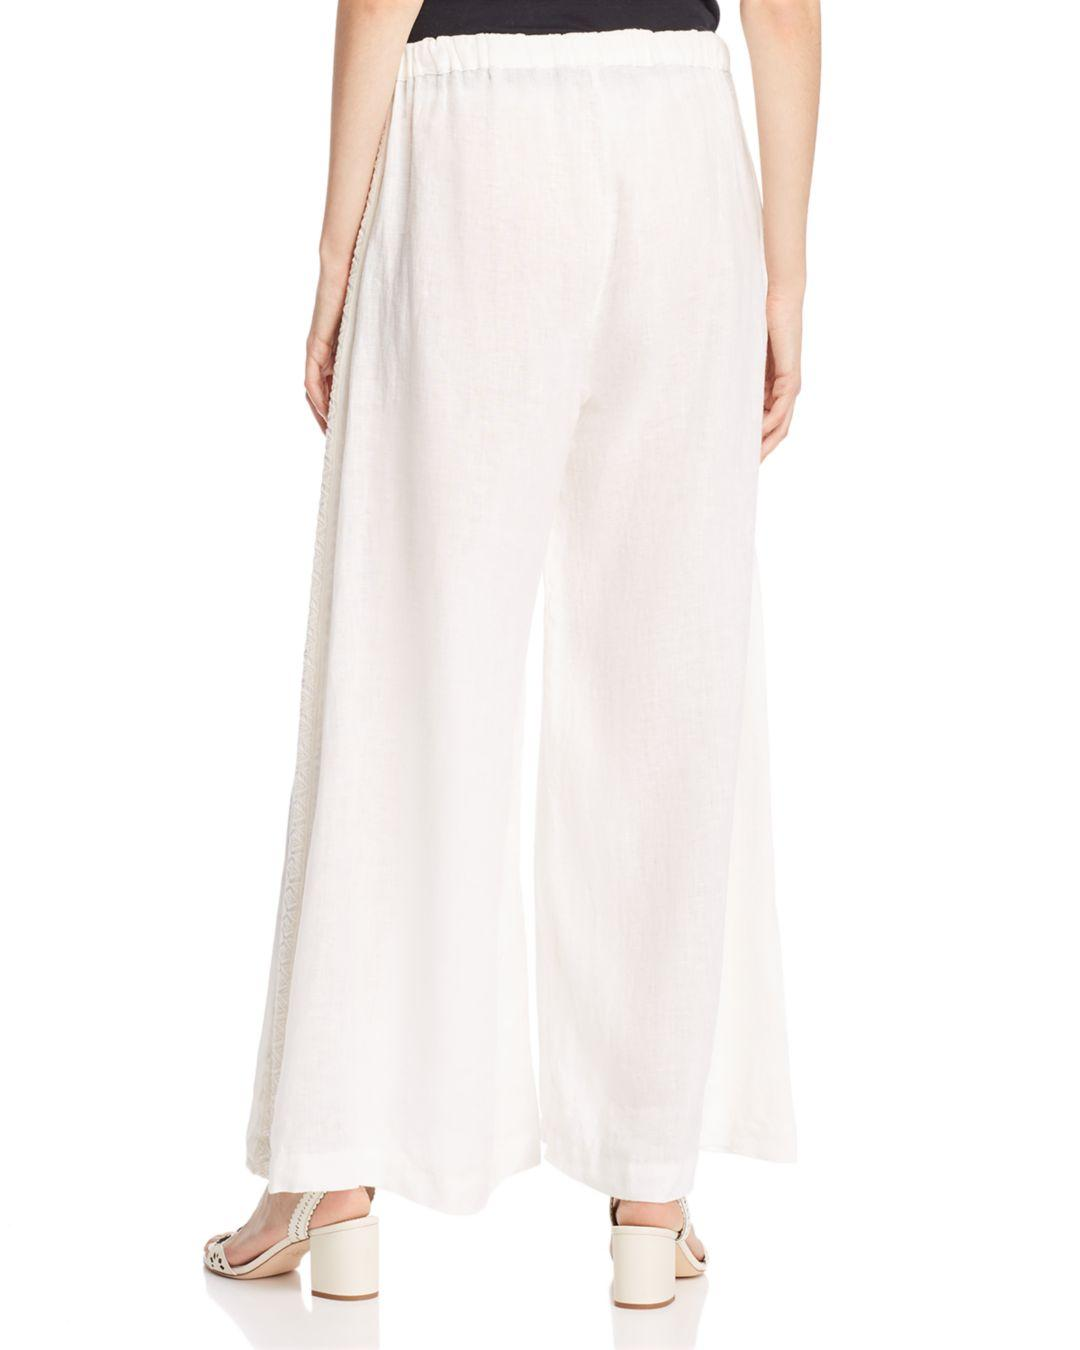 6d8ab3c7be5 Johnny Was Poa Wide-leg Linen Pants in White - Lyst